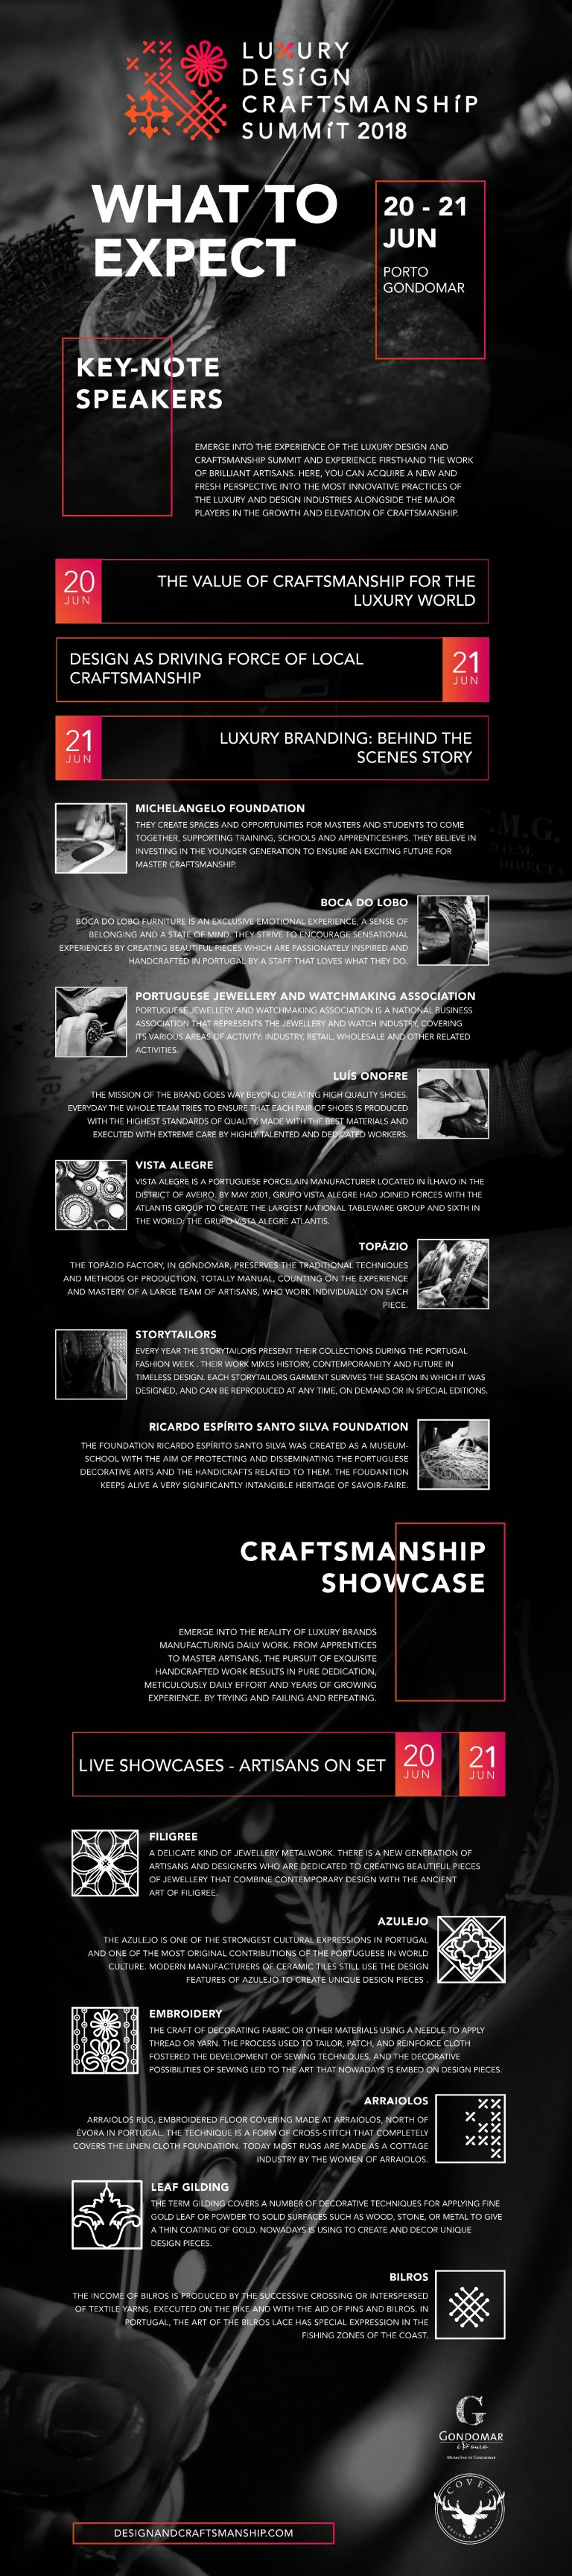 Time To Know More About The Luxury Design and Craftmanship 2018! 4 luxury design and craftmanship 2018 Time To Know More About The Luxury Design and Craftmanship 2018! Time To Know More About The Luxury Design and Craftmanship 2018 4